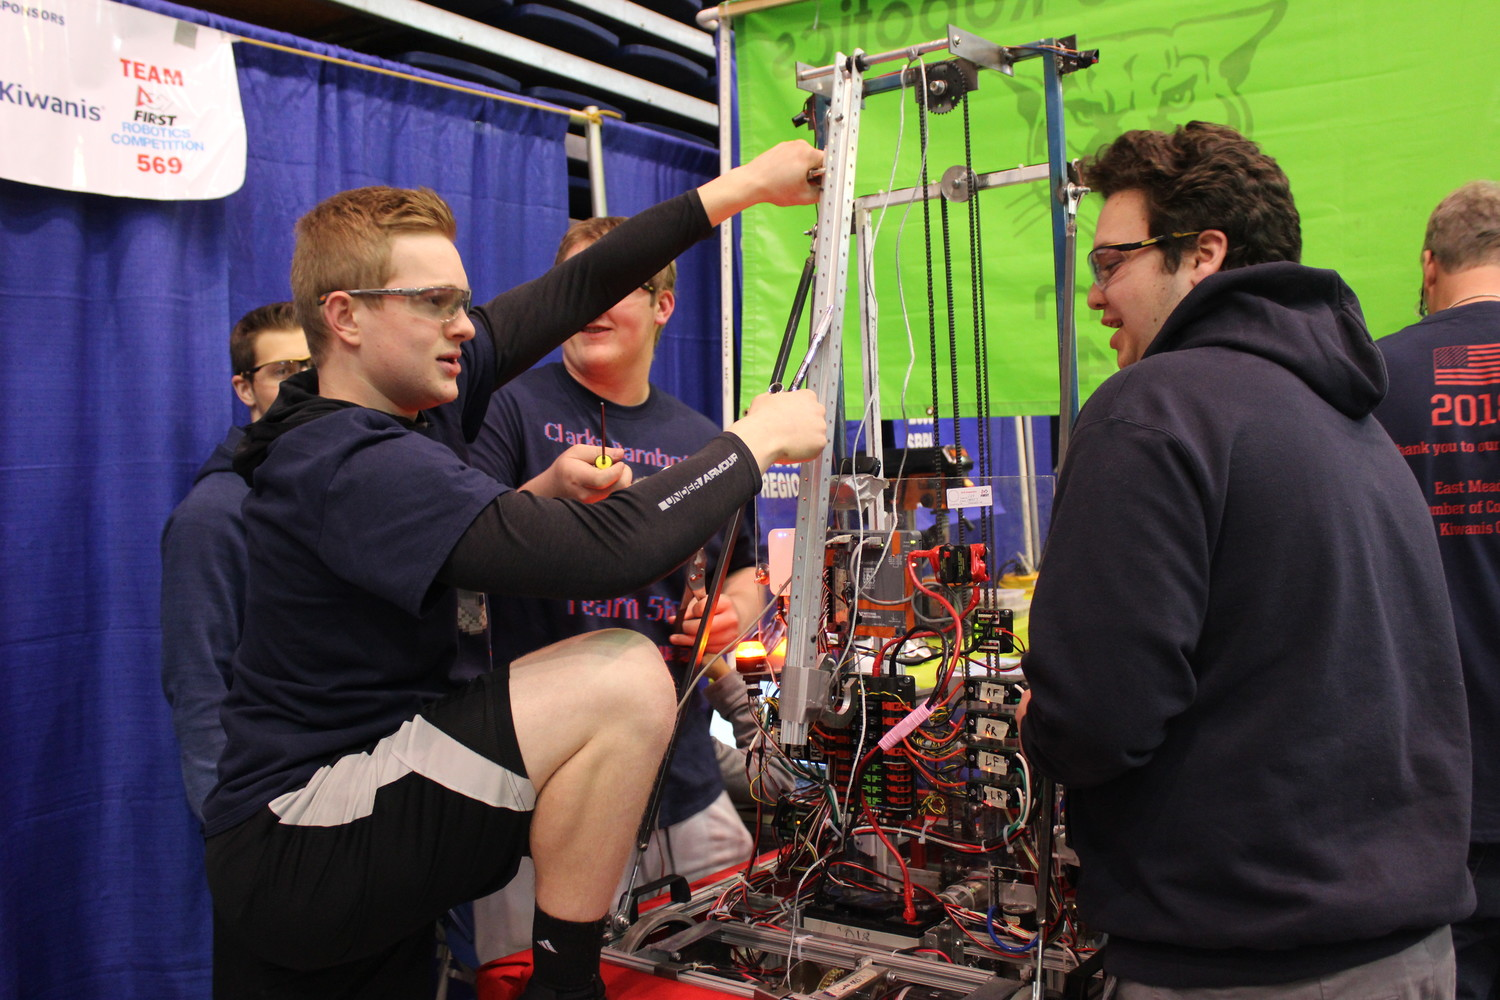 Students at W.T. Clarke High School are representing East Meadow at the 19th Long Island Robotics Competition, hosted from April 9 to 14 at Hofstra University by the education organization For Inspiration and Recognition of Science and Technology. Pictured are seniors Ethan Scherer and Brad Sweeney.